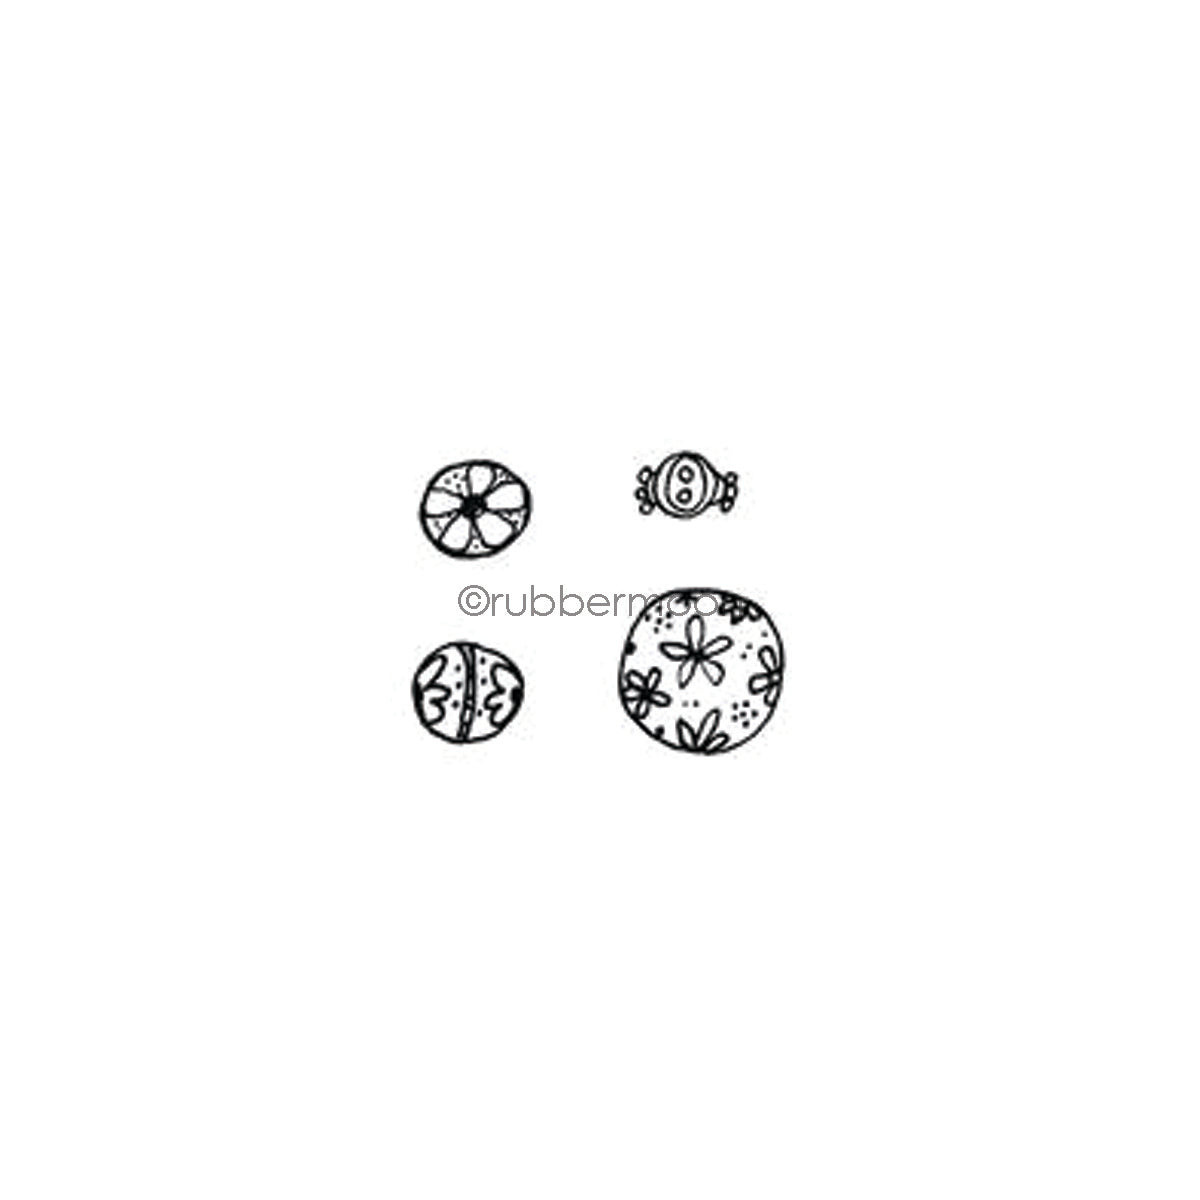 Kae Pea | KP7342G - Flower Beads Cube - Rubber Art Stamp